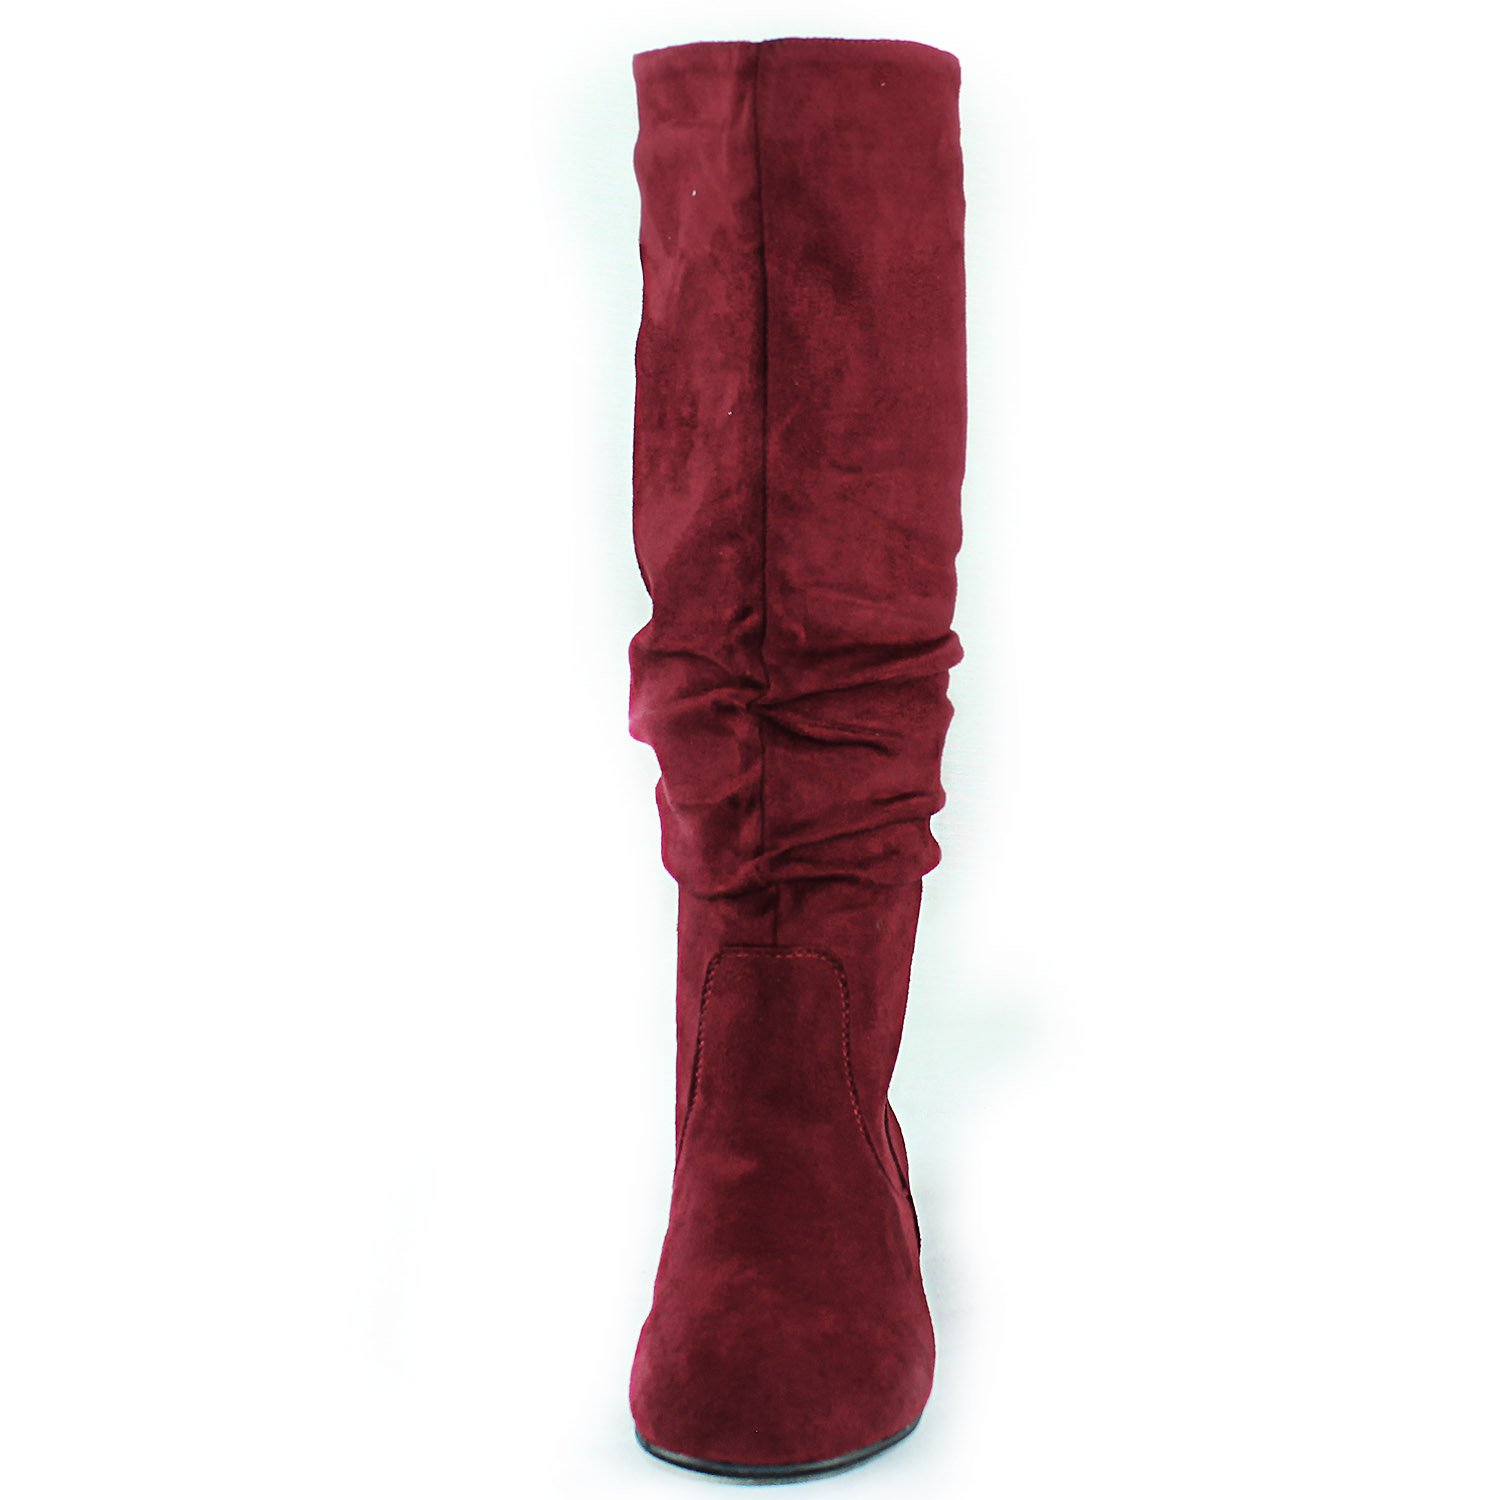 52d43085b4ab5 Amazon.com | Top Moda Women's Mid Calf Slouch Faux Suede Comfortable Slip  on Round Toe Flat Heel Knee High Boots Fashion Shoes | Boots